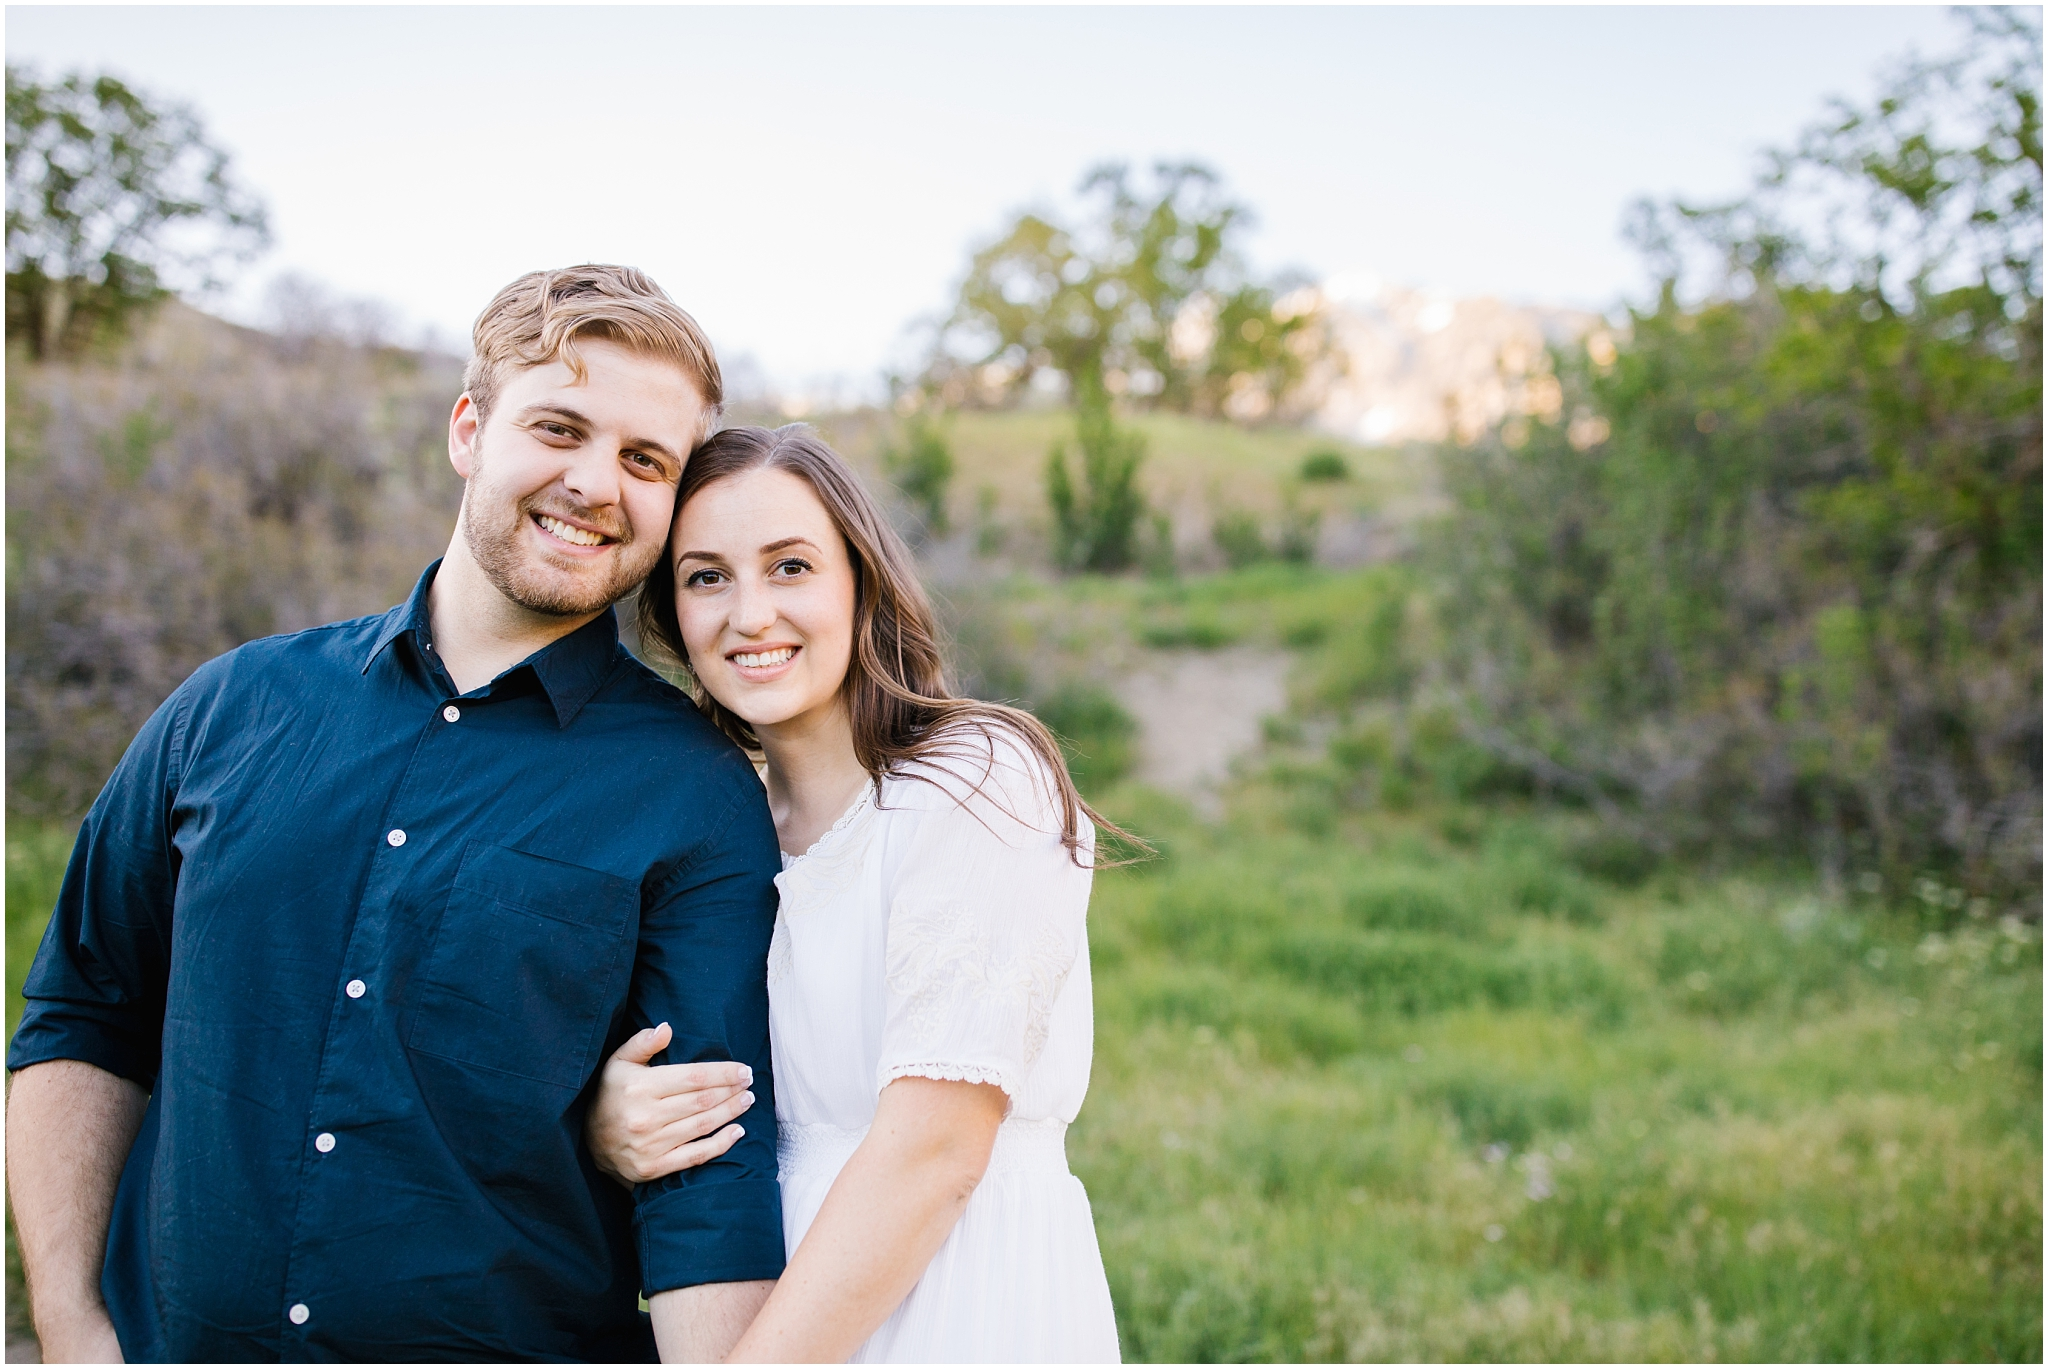 Lizzie-B-Imagery-Utah-Wedding-Photographer-Thanksgiving-Point-Payson-Temple_0150.jpg